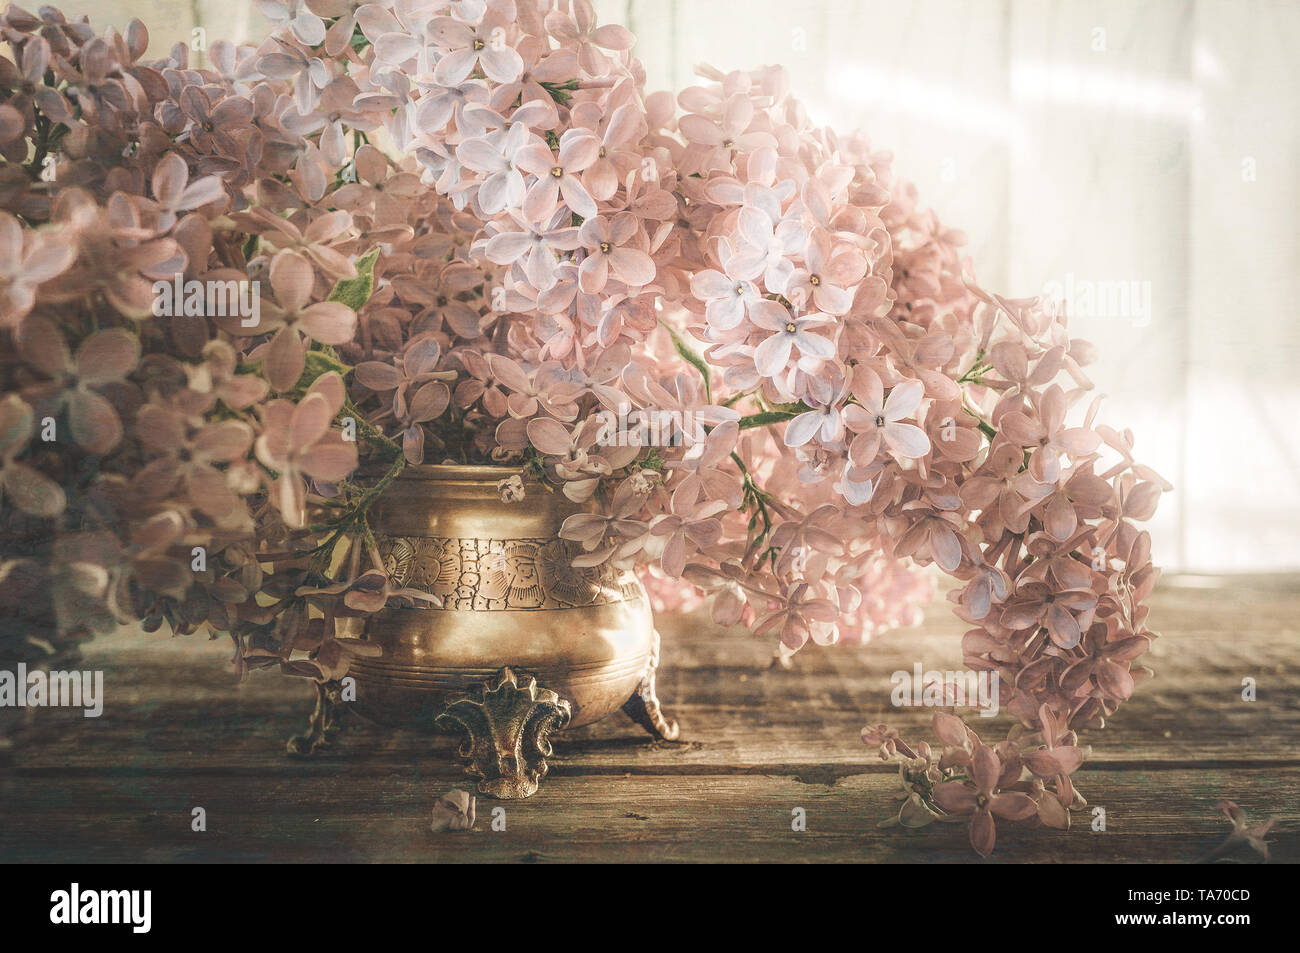 Beautiful bouquet of lilacs on the table in the raindrops. Retro look. Copy space. Art. - Stock Image